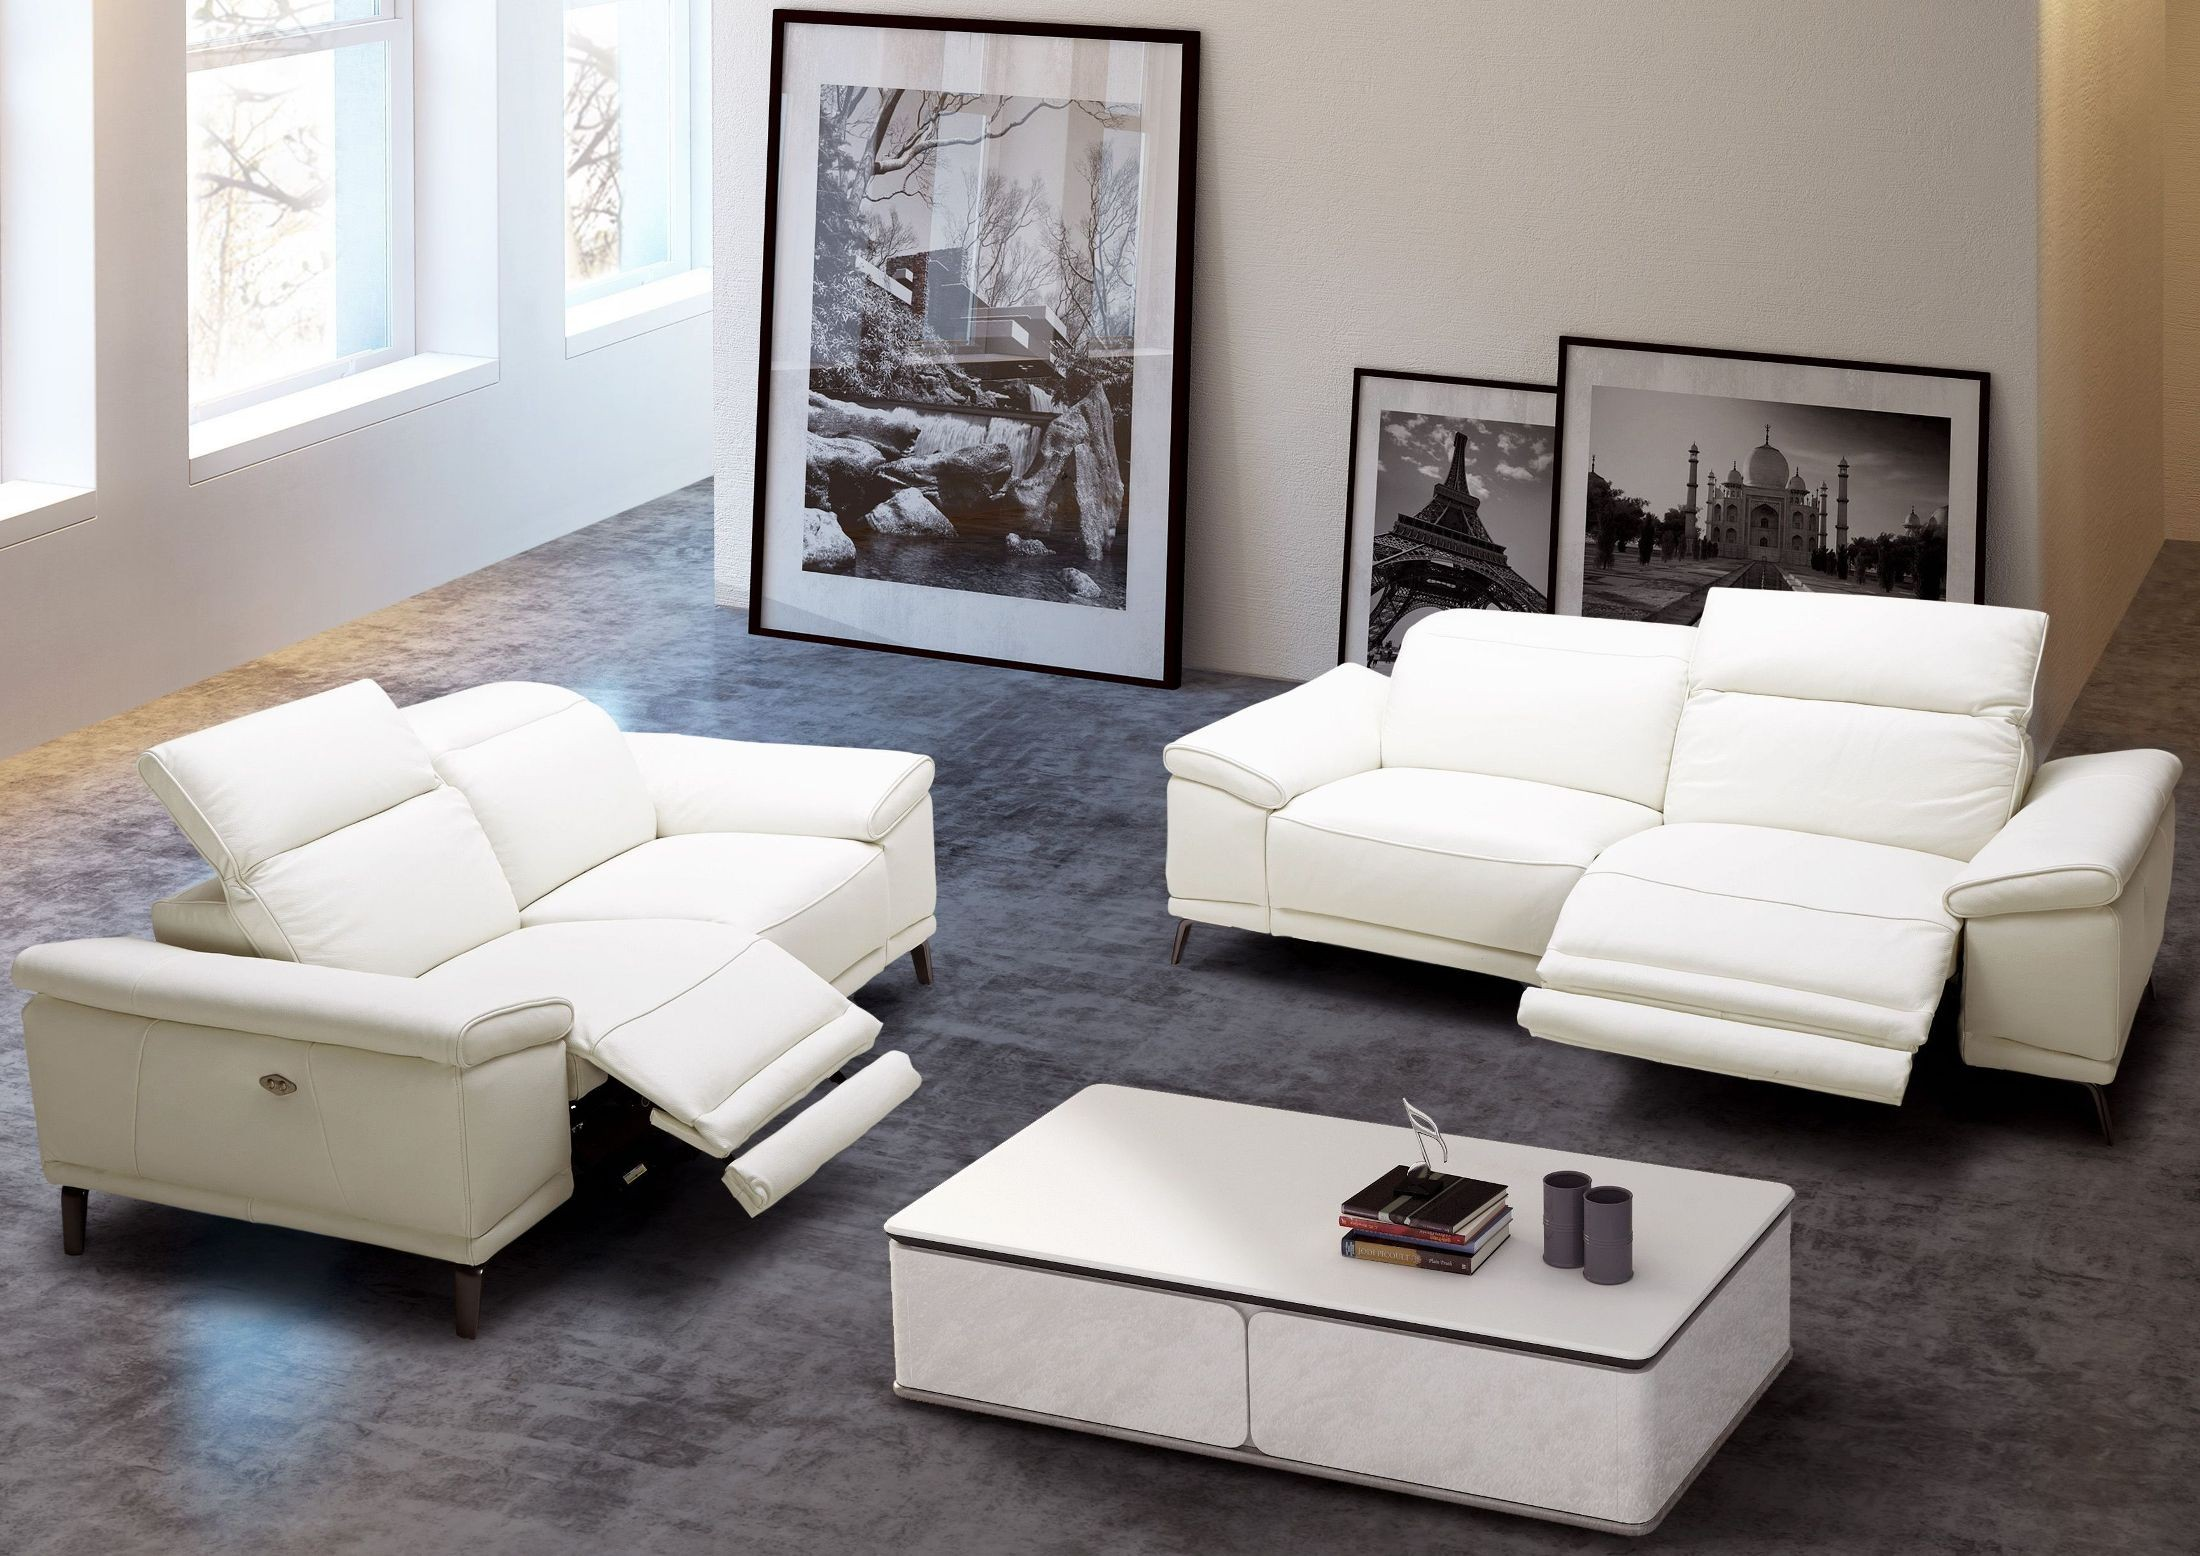 Gaia White Leather Power Reclining Living Room Set 18253 S J M